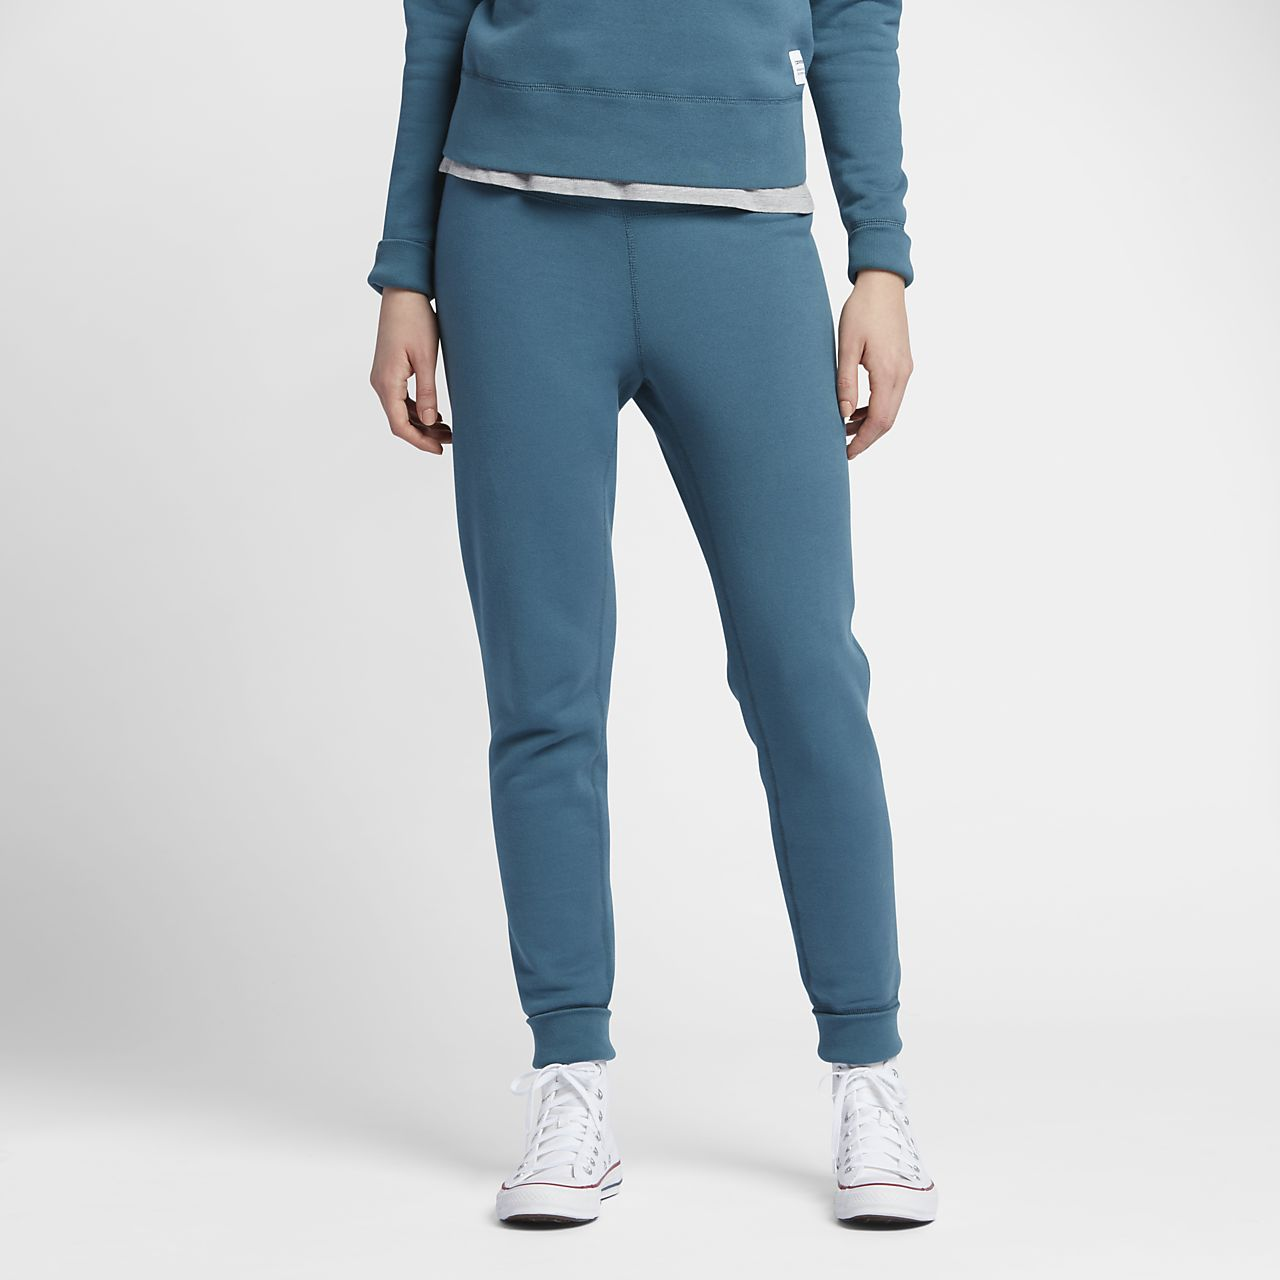 Converse Essentials Sportswear Women's Sweatpants Teal